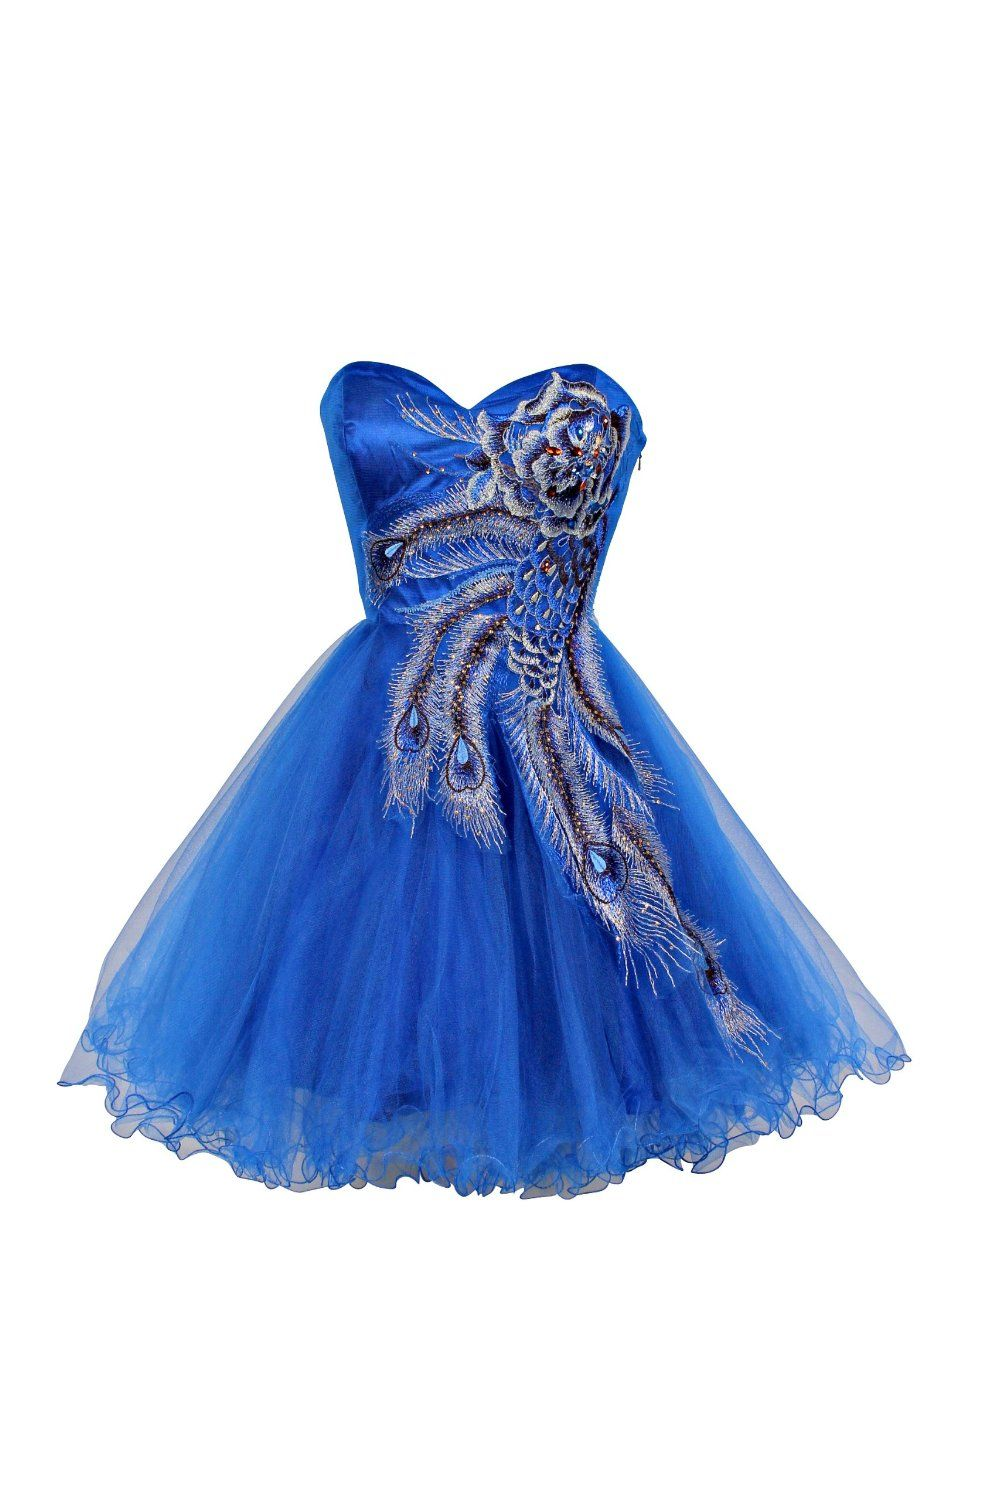 79cfc97ce6c09 Metallic Peacock Embroidered Holiday Party Prom Dress Junior Size ...